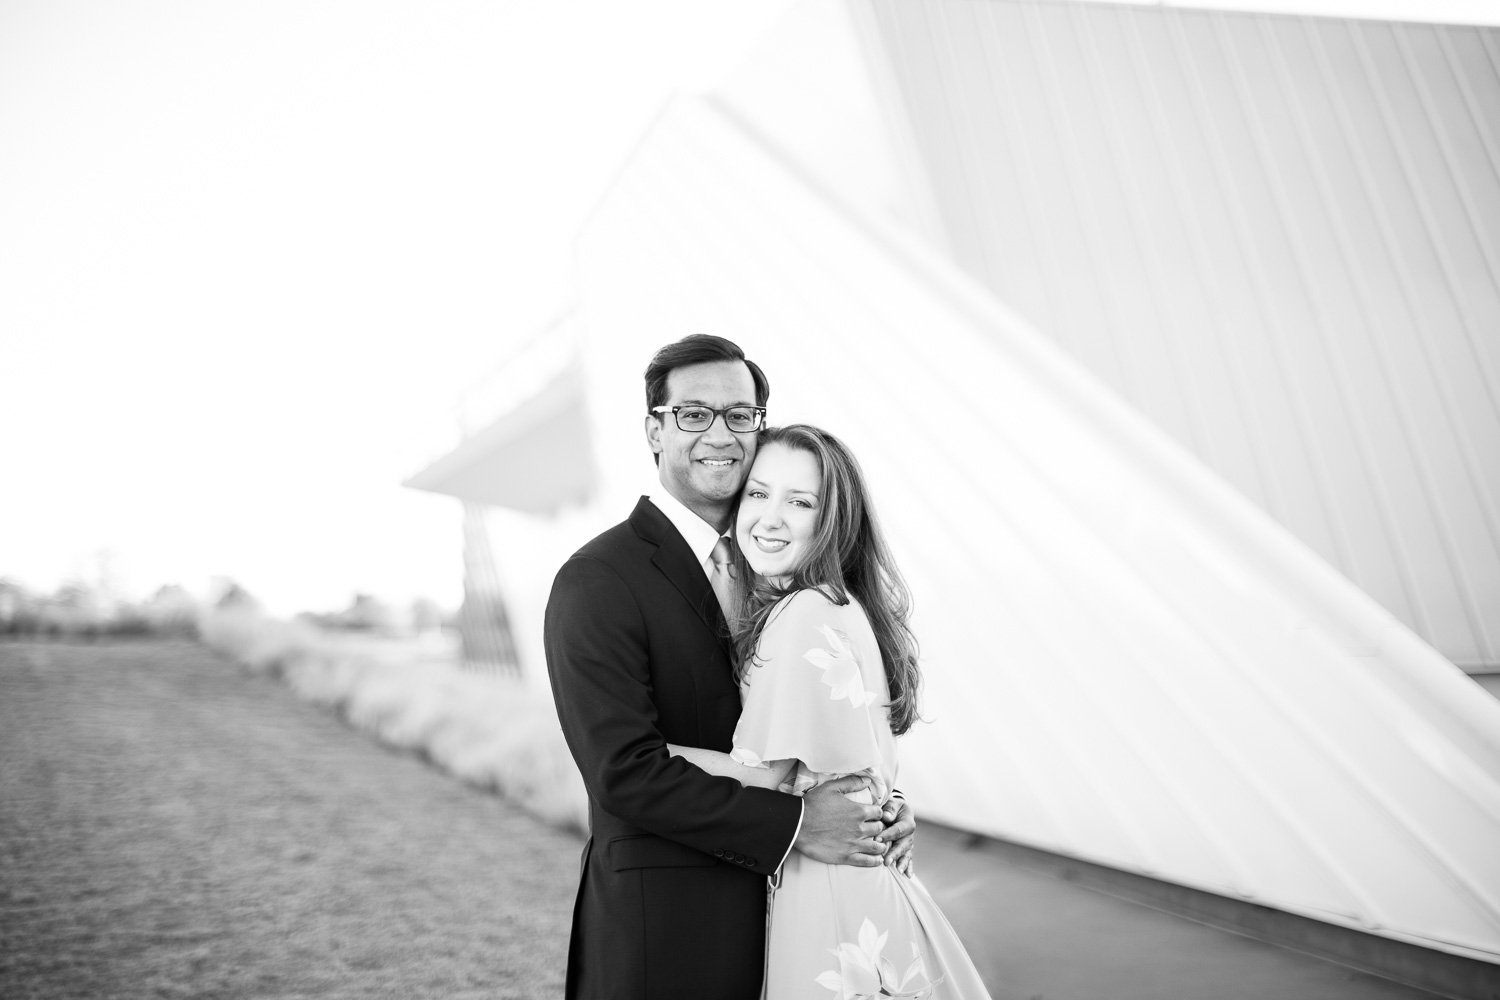 OKC-Boathouse-Engagement-Photos-35.jpg